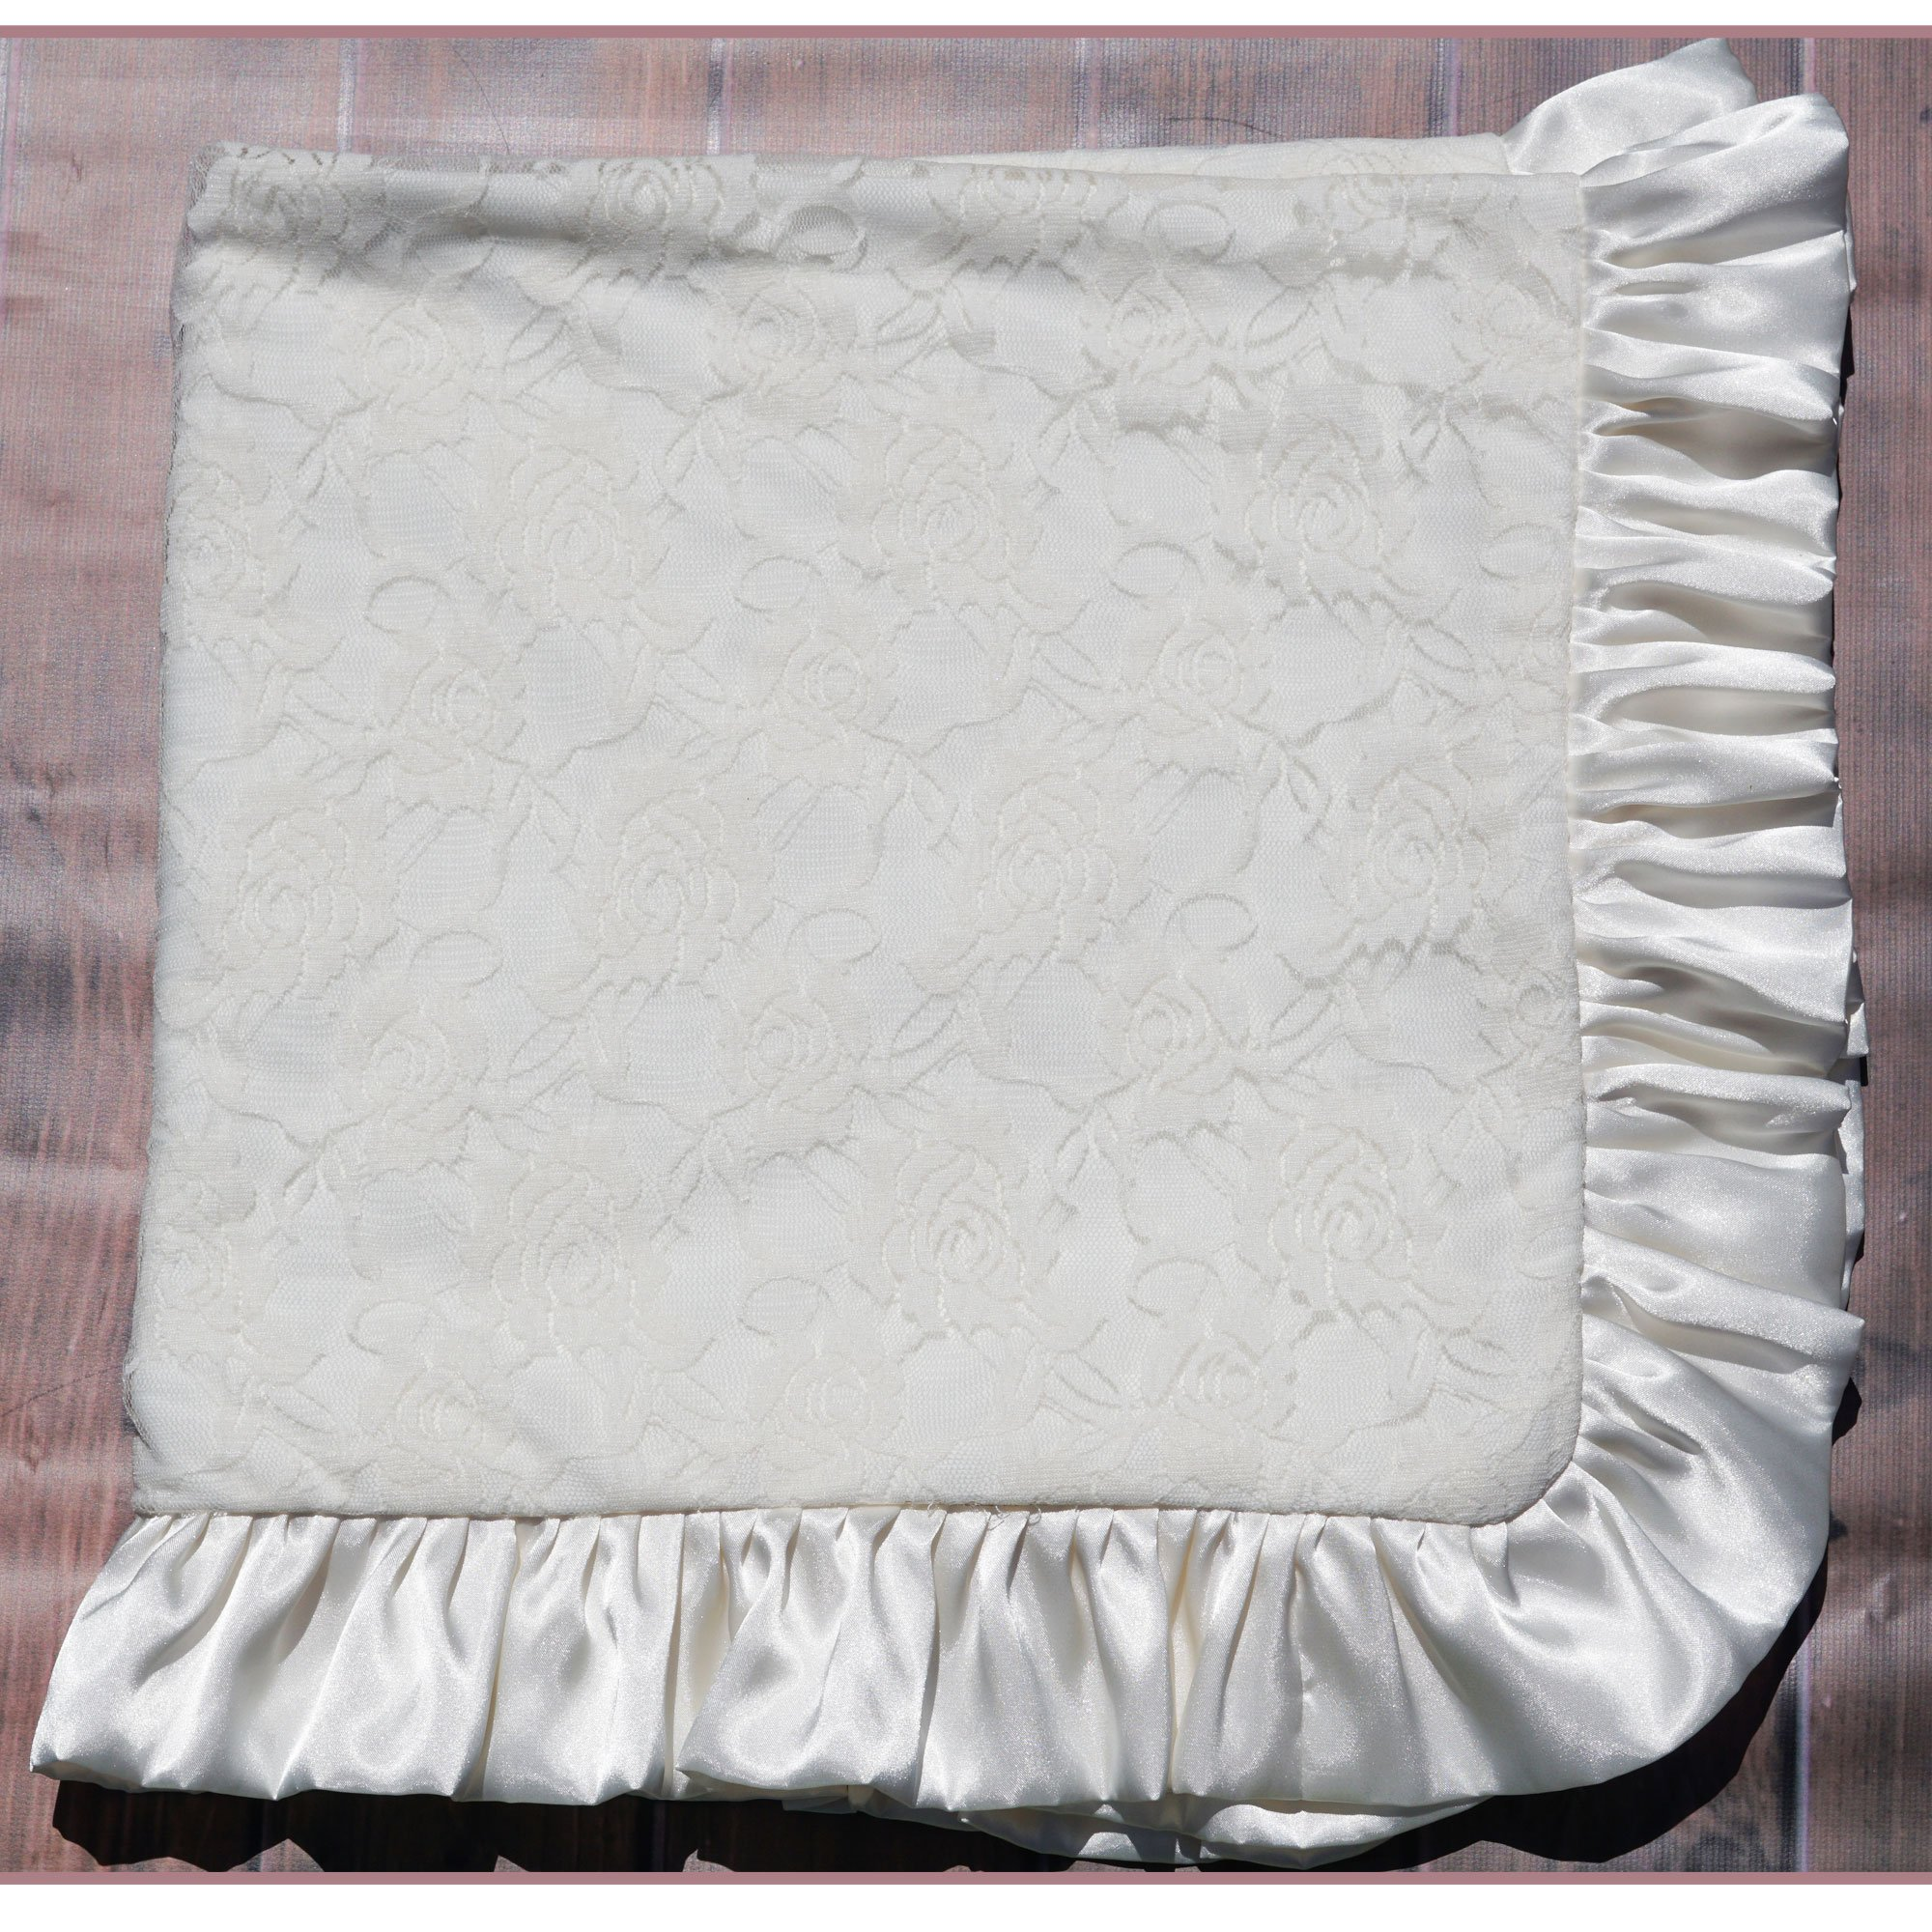 Cuddle Couture Ivory Lace Blanket With Ivory Satin Trim